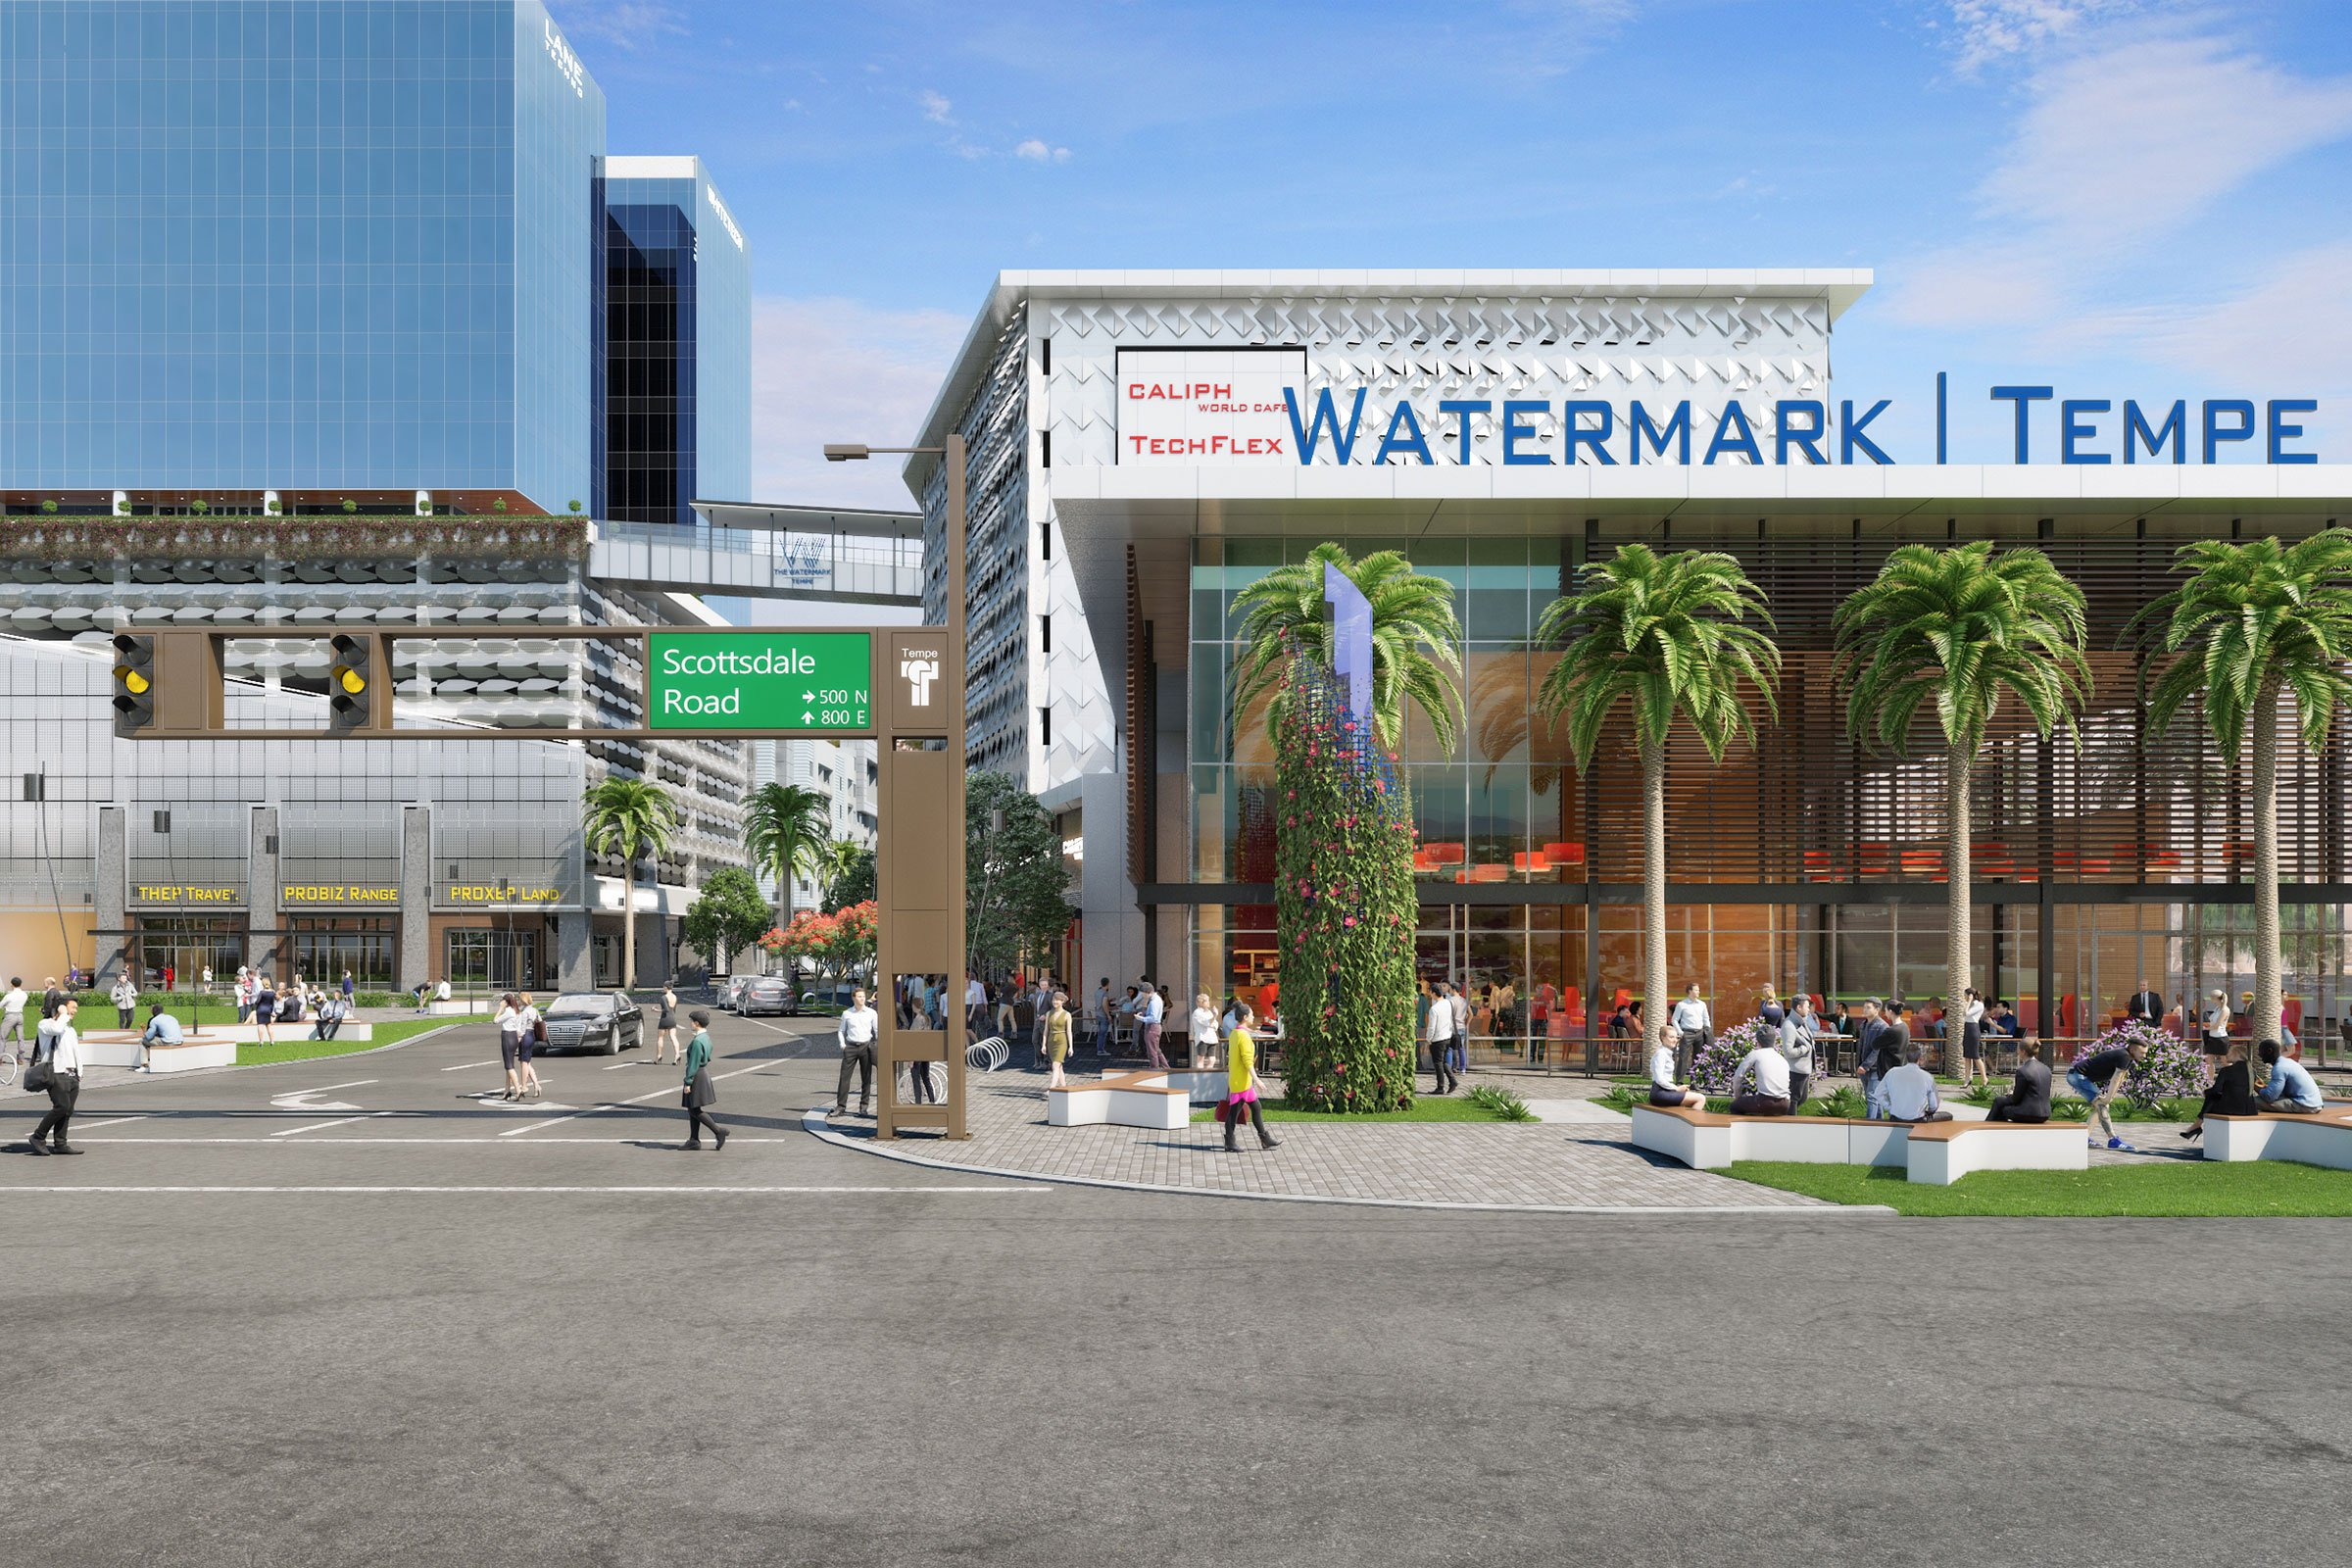 The Watermark is Tempe's first vertically integrated mixed-use development.